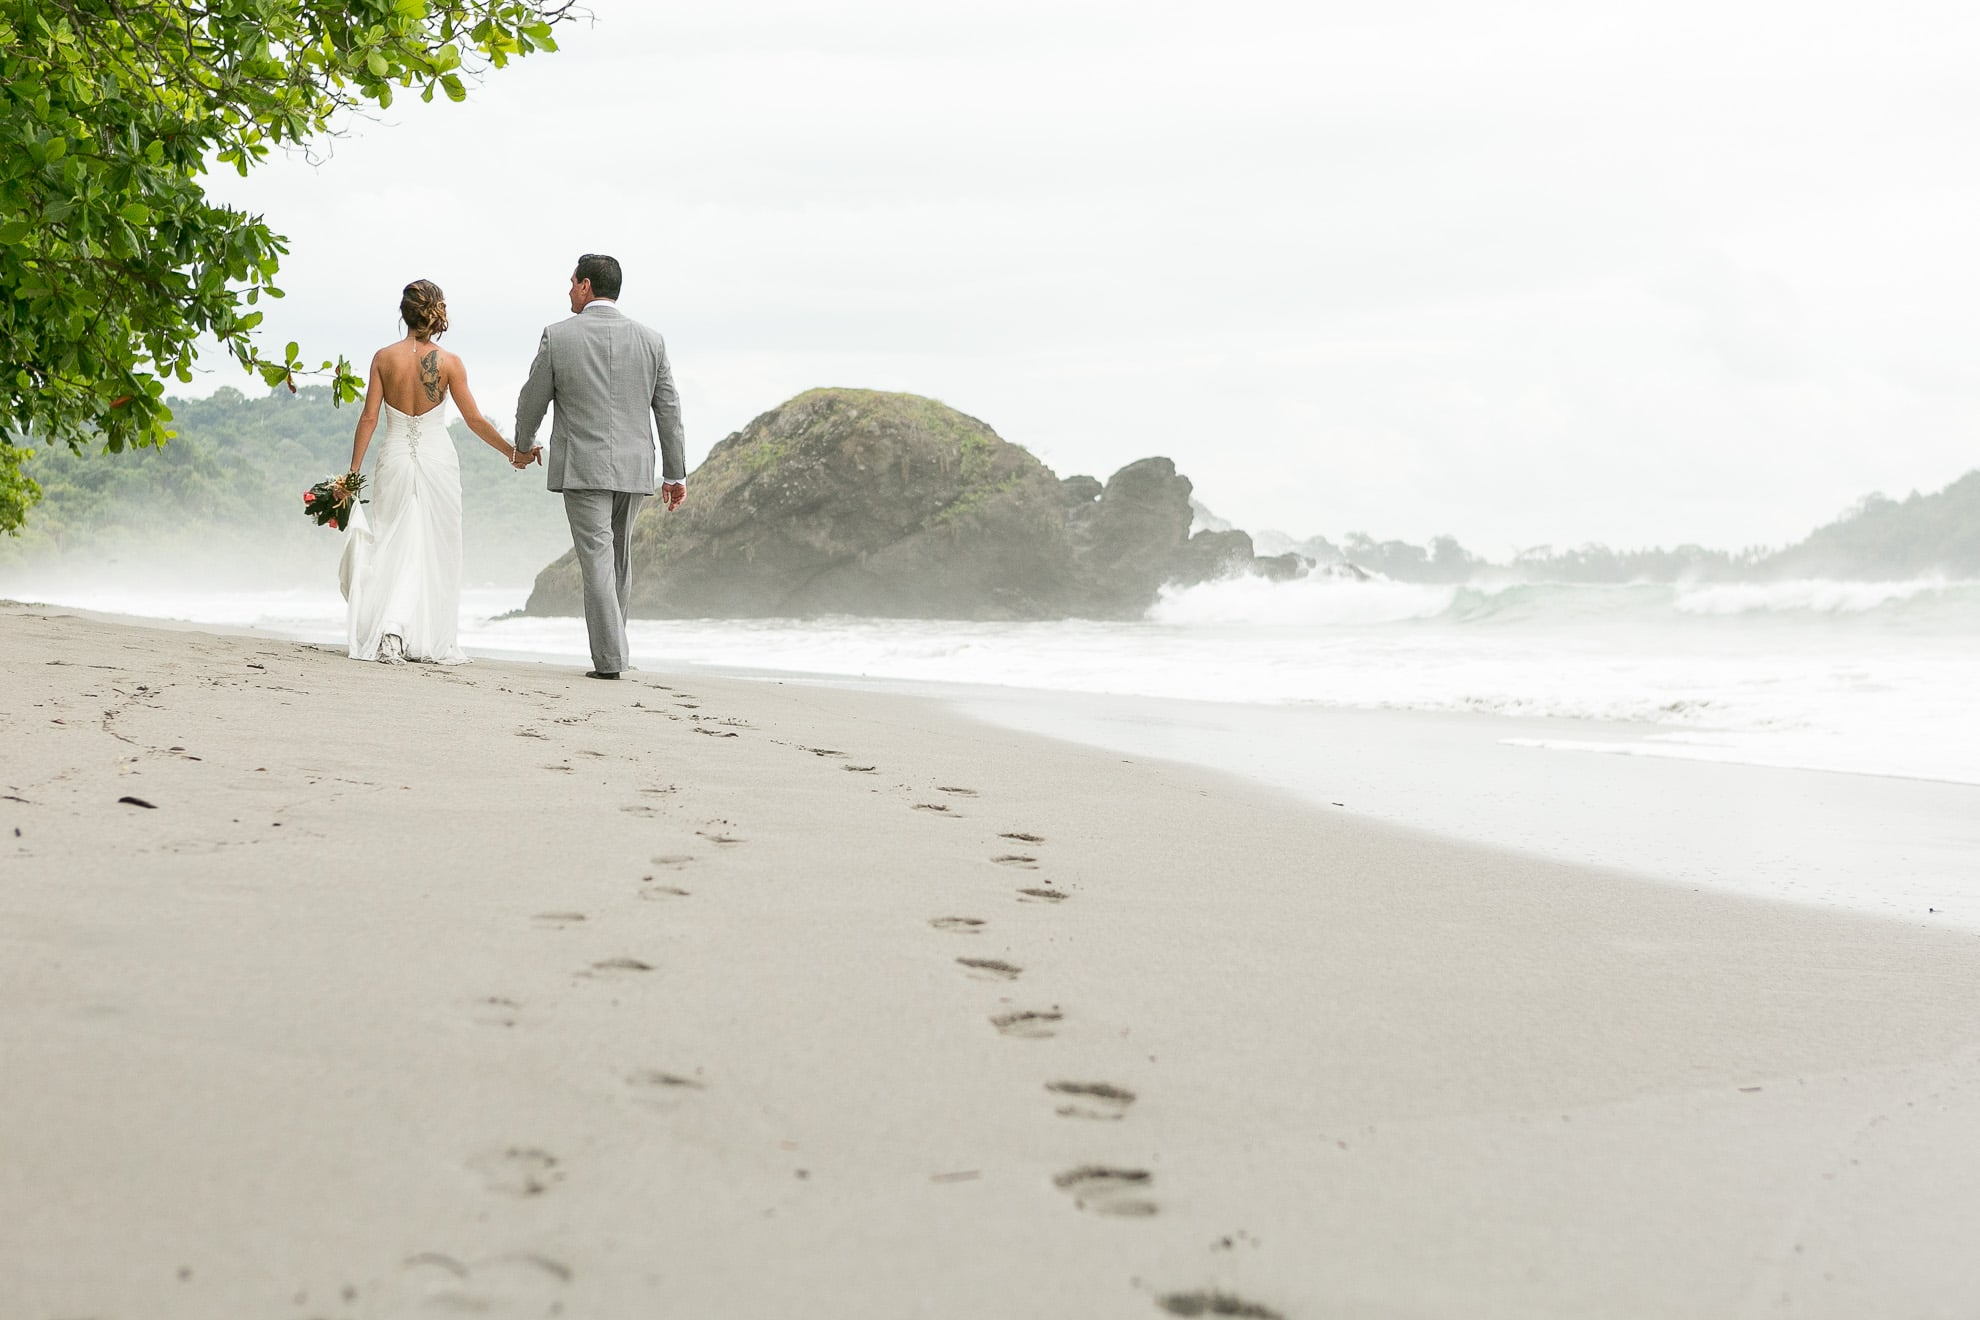 Destination weddings Arenas del Mar